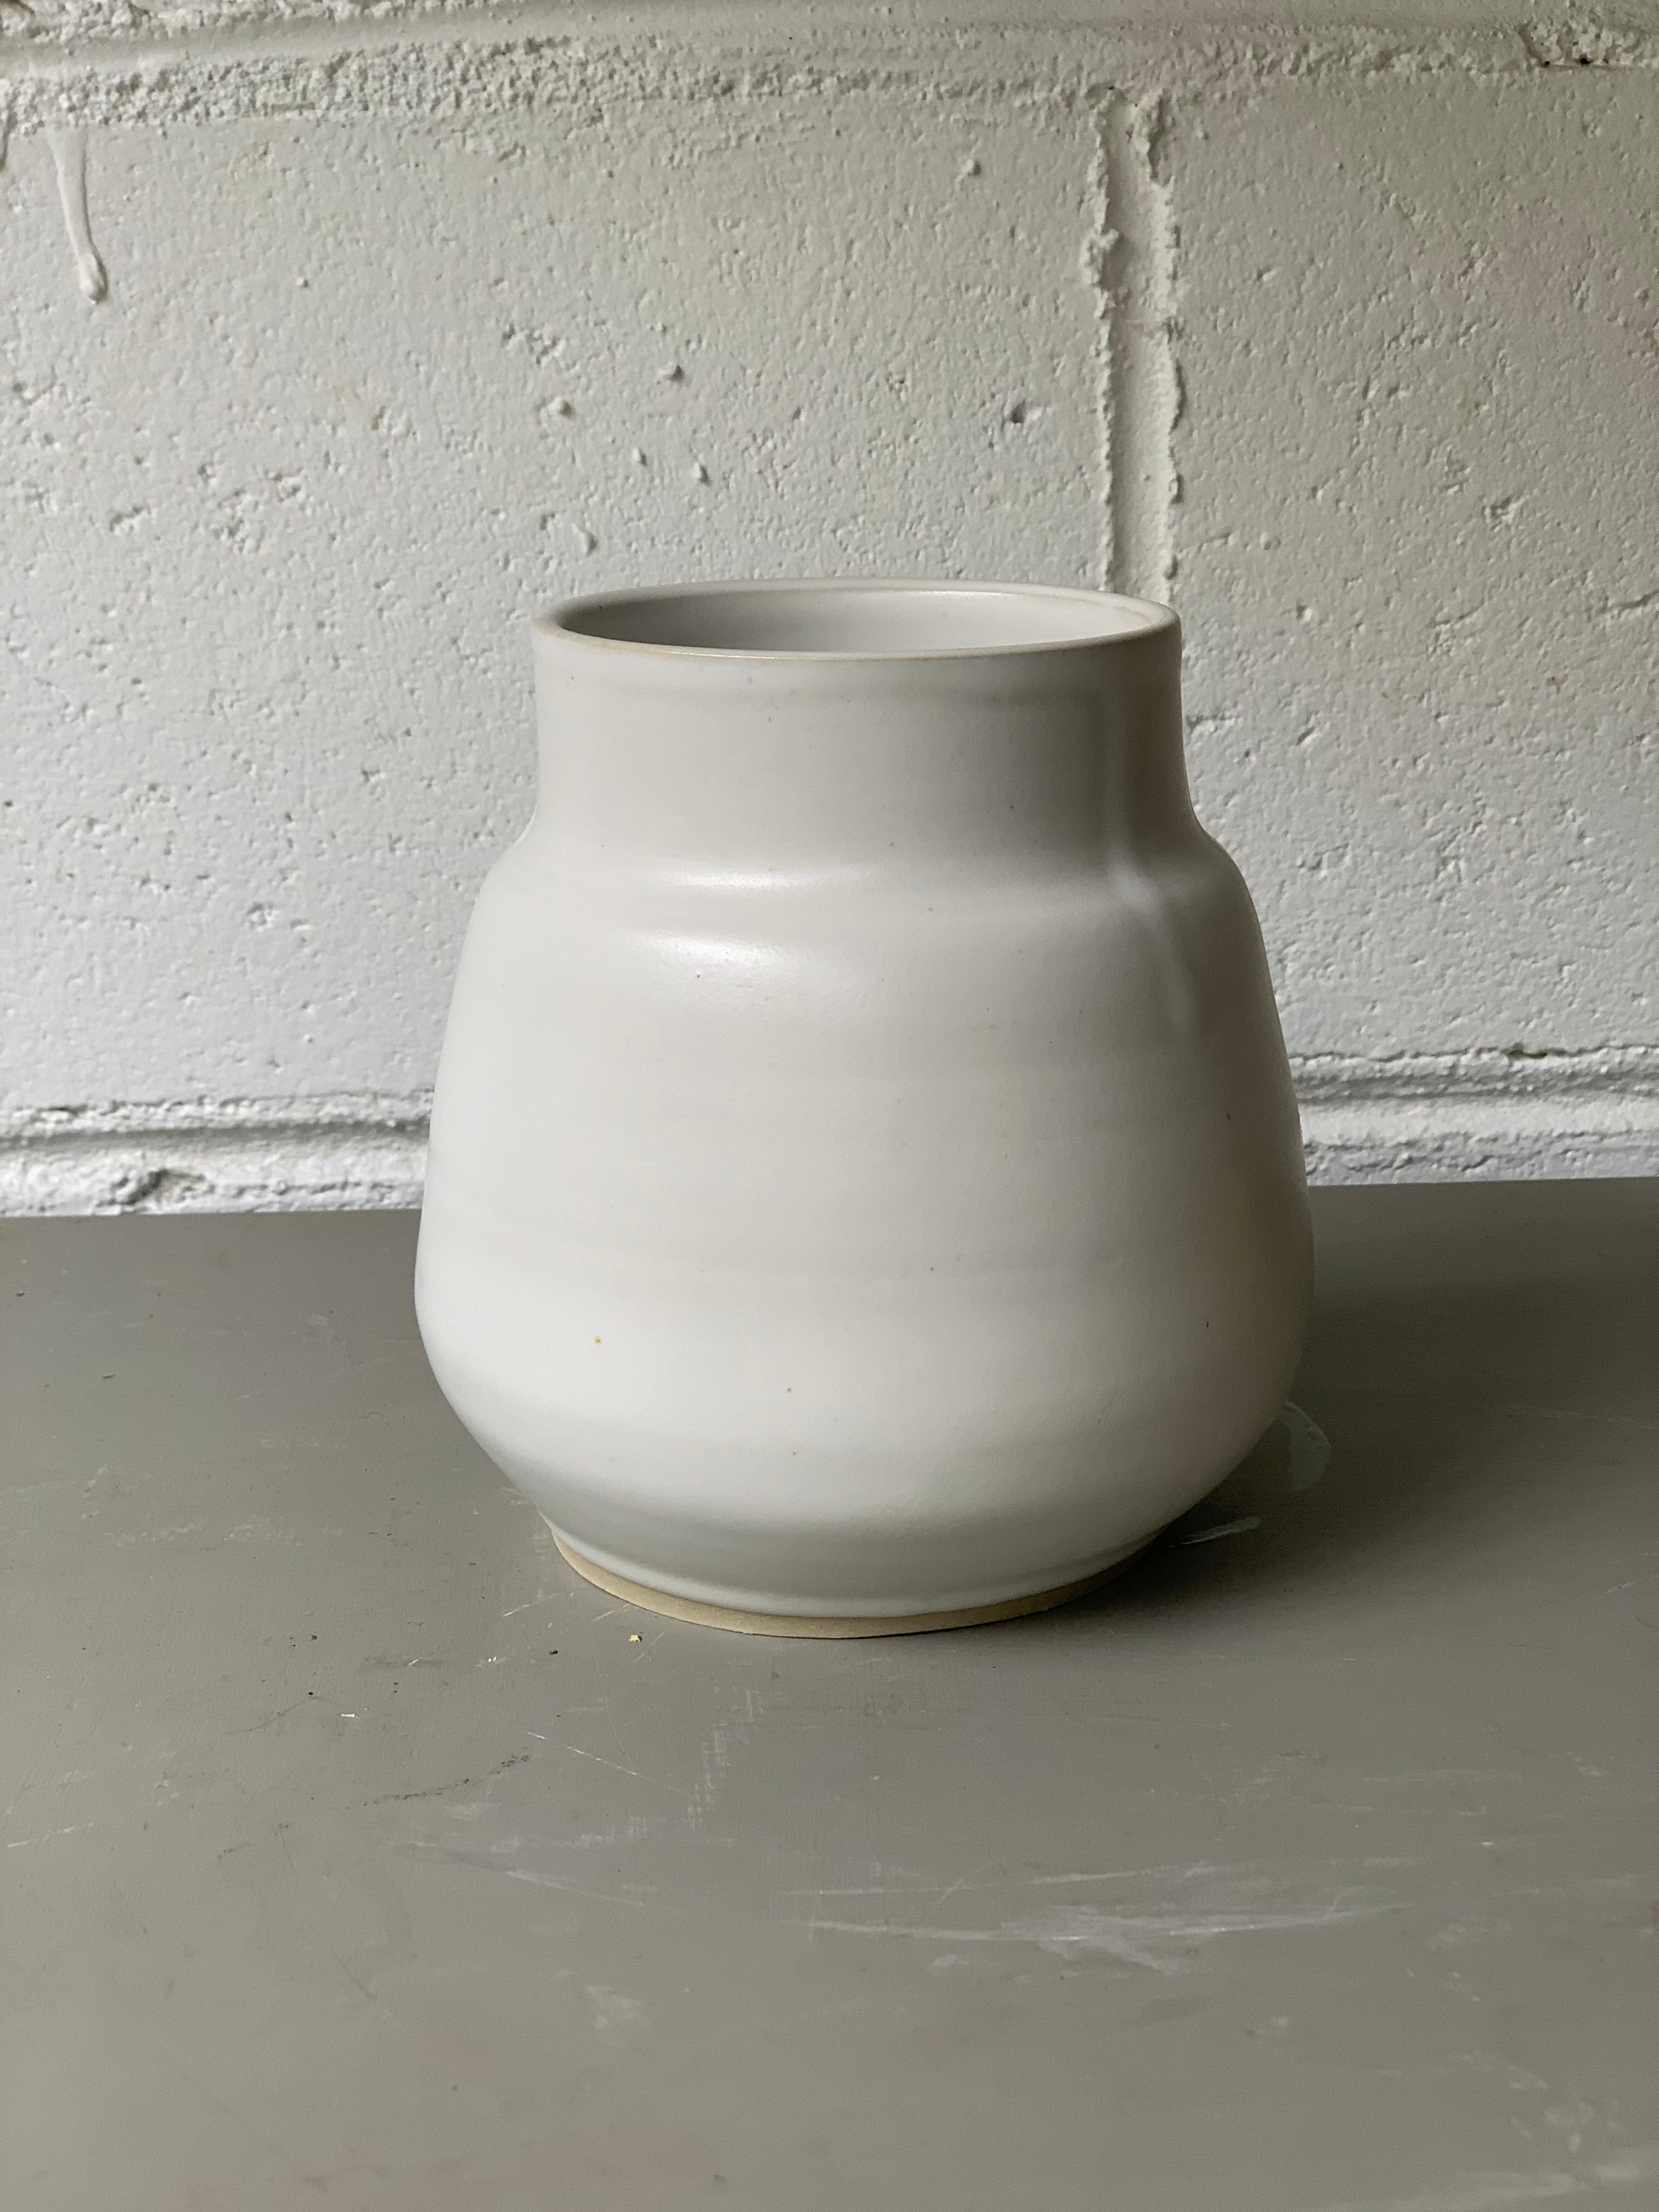 Cooper and Clay Vase No. 20